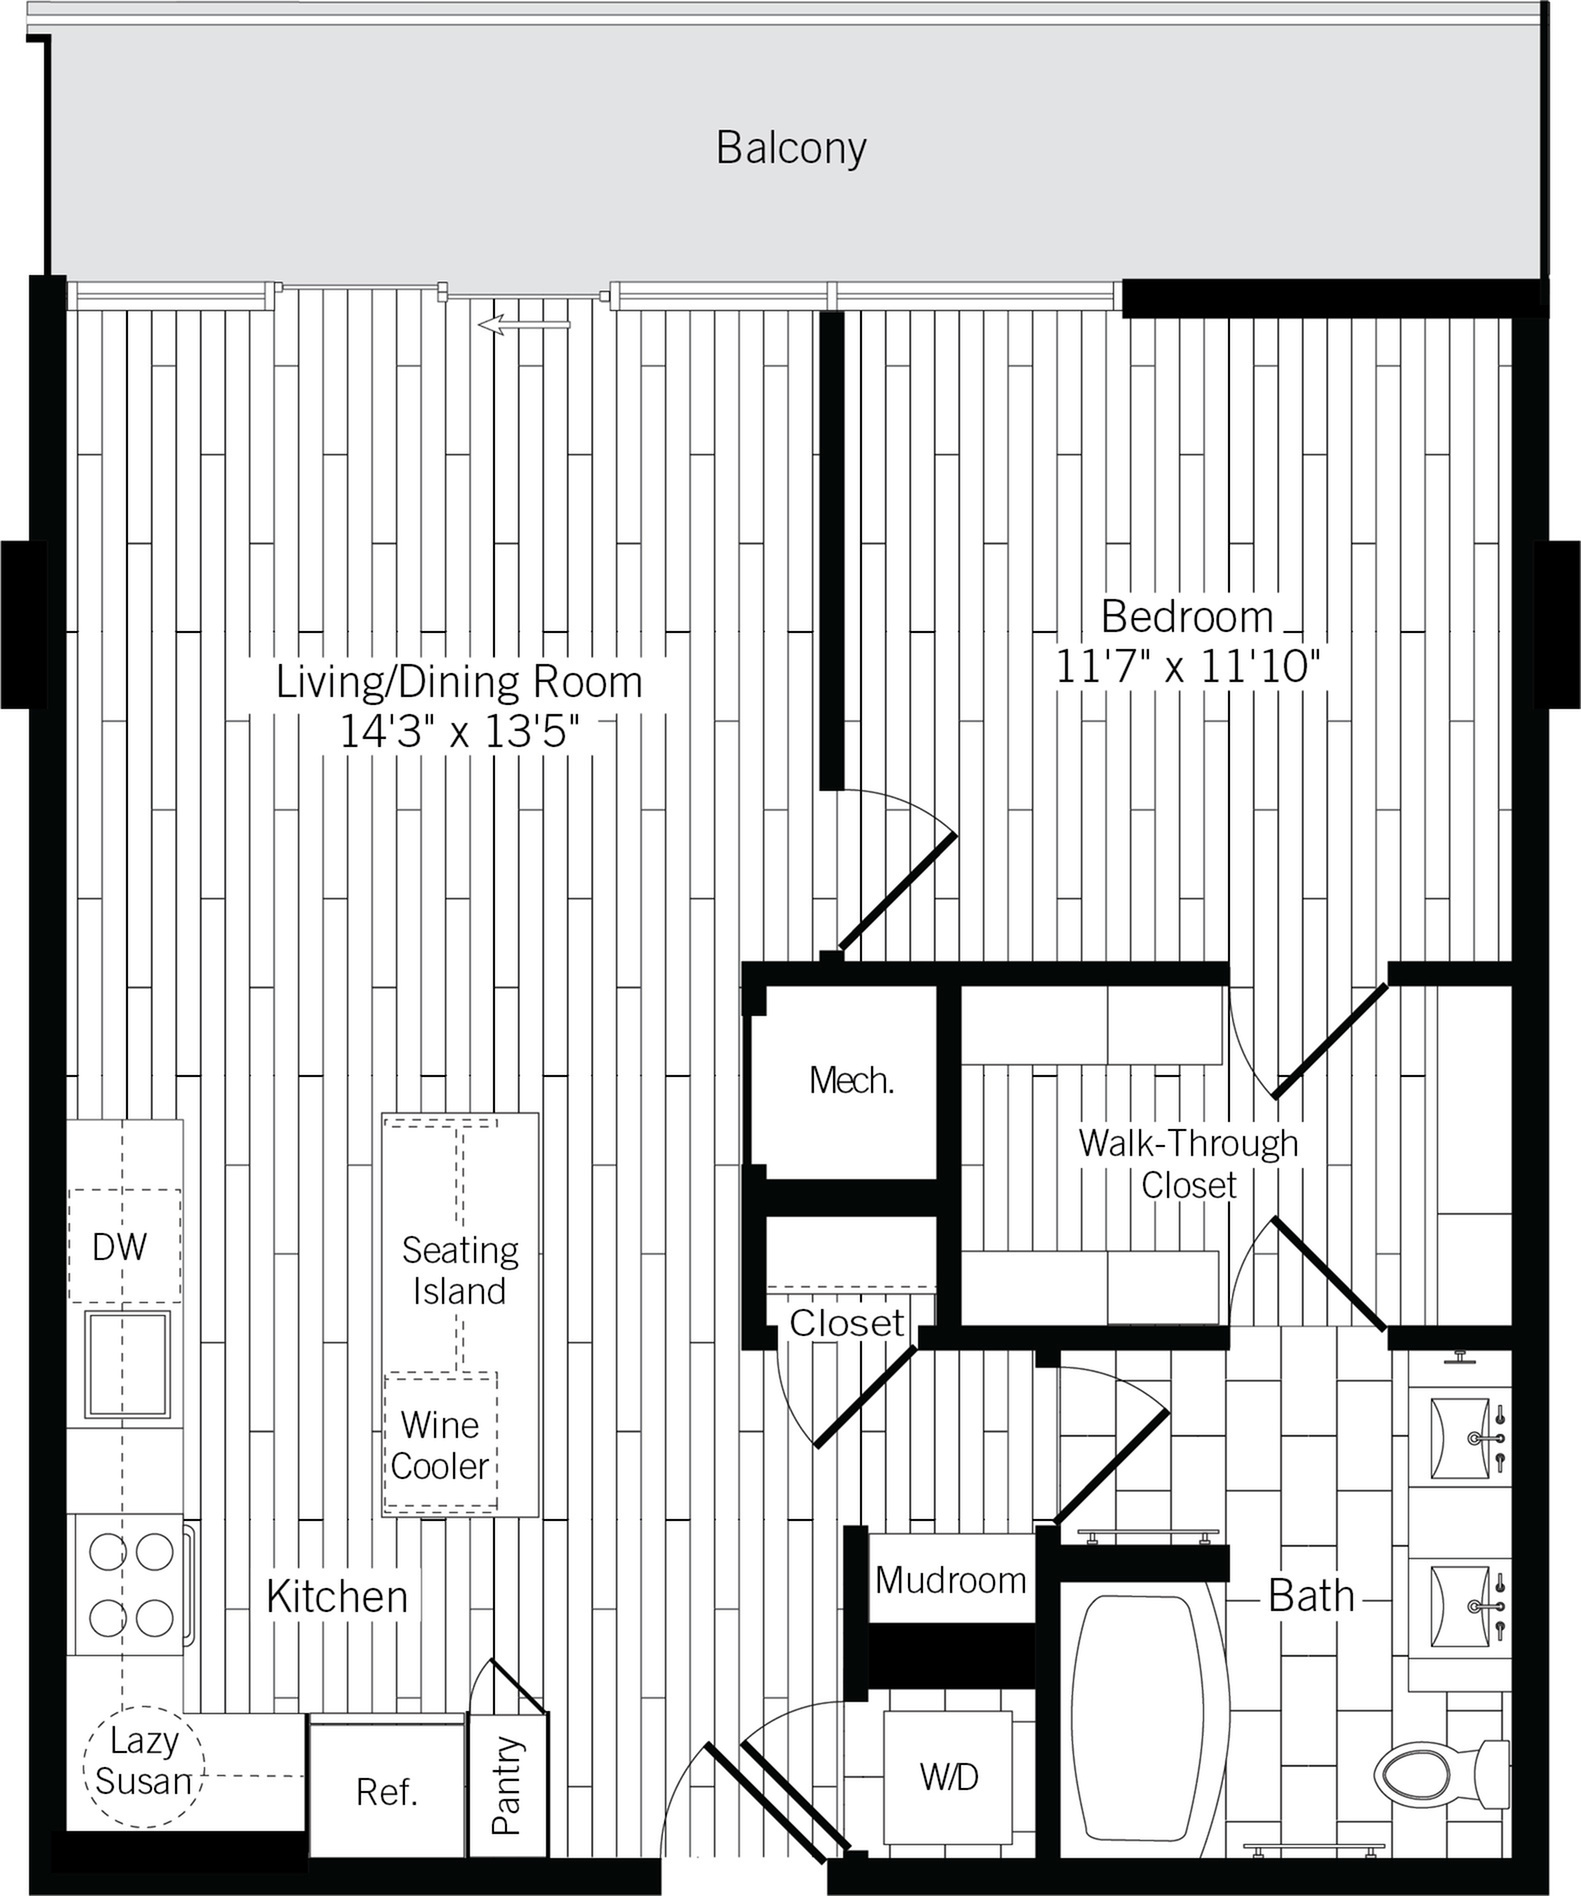 775 square foot one bedroom one bath with wood plank flooring throughout apartment floorplan image